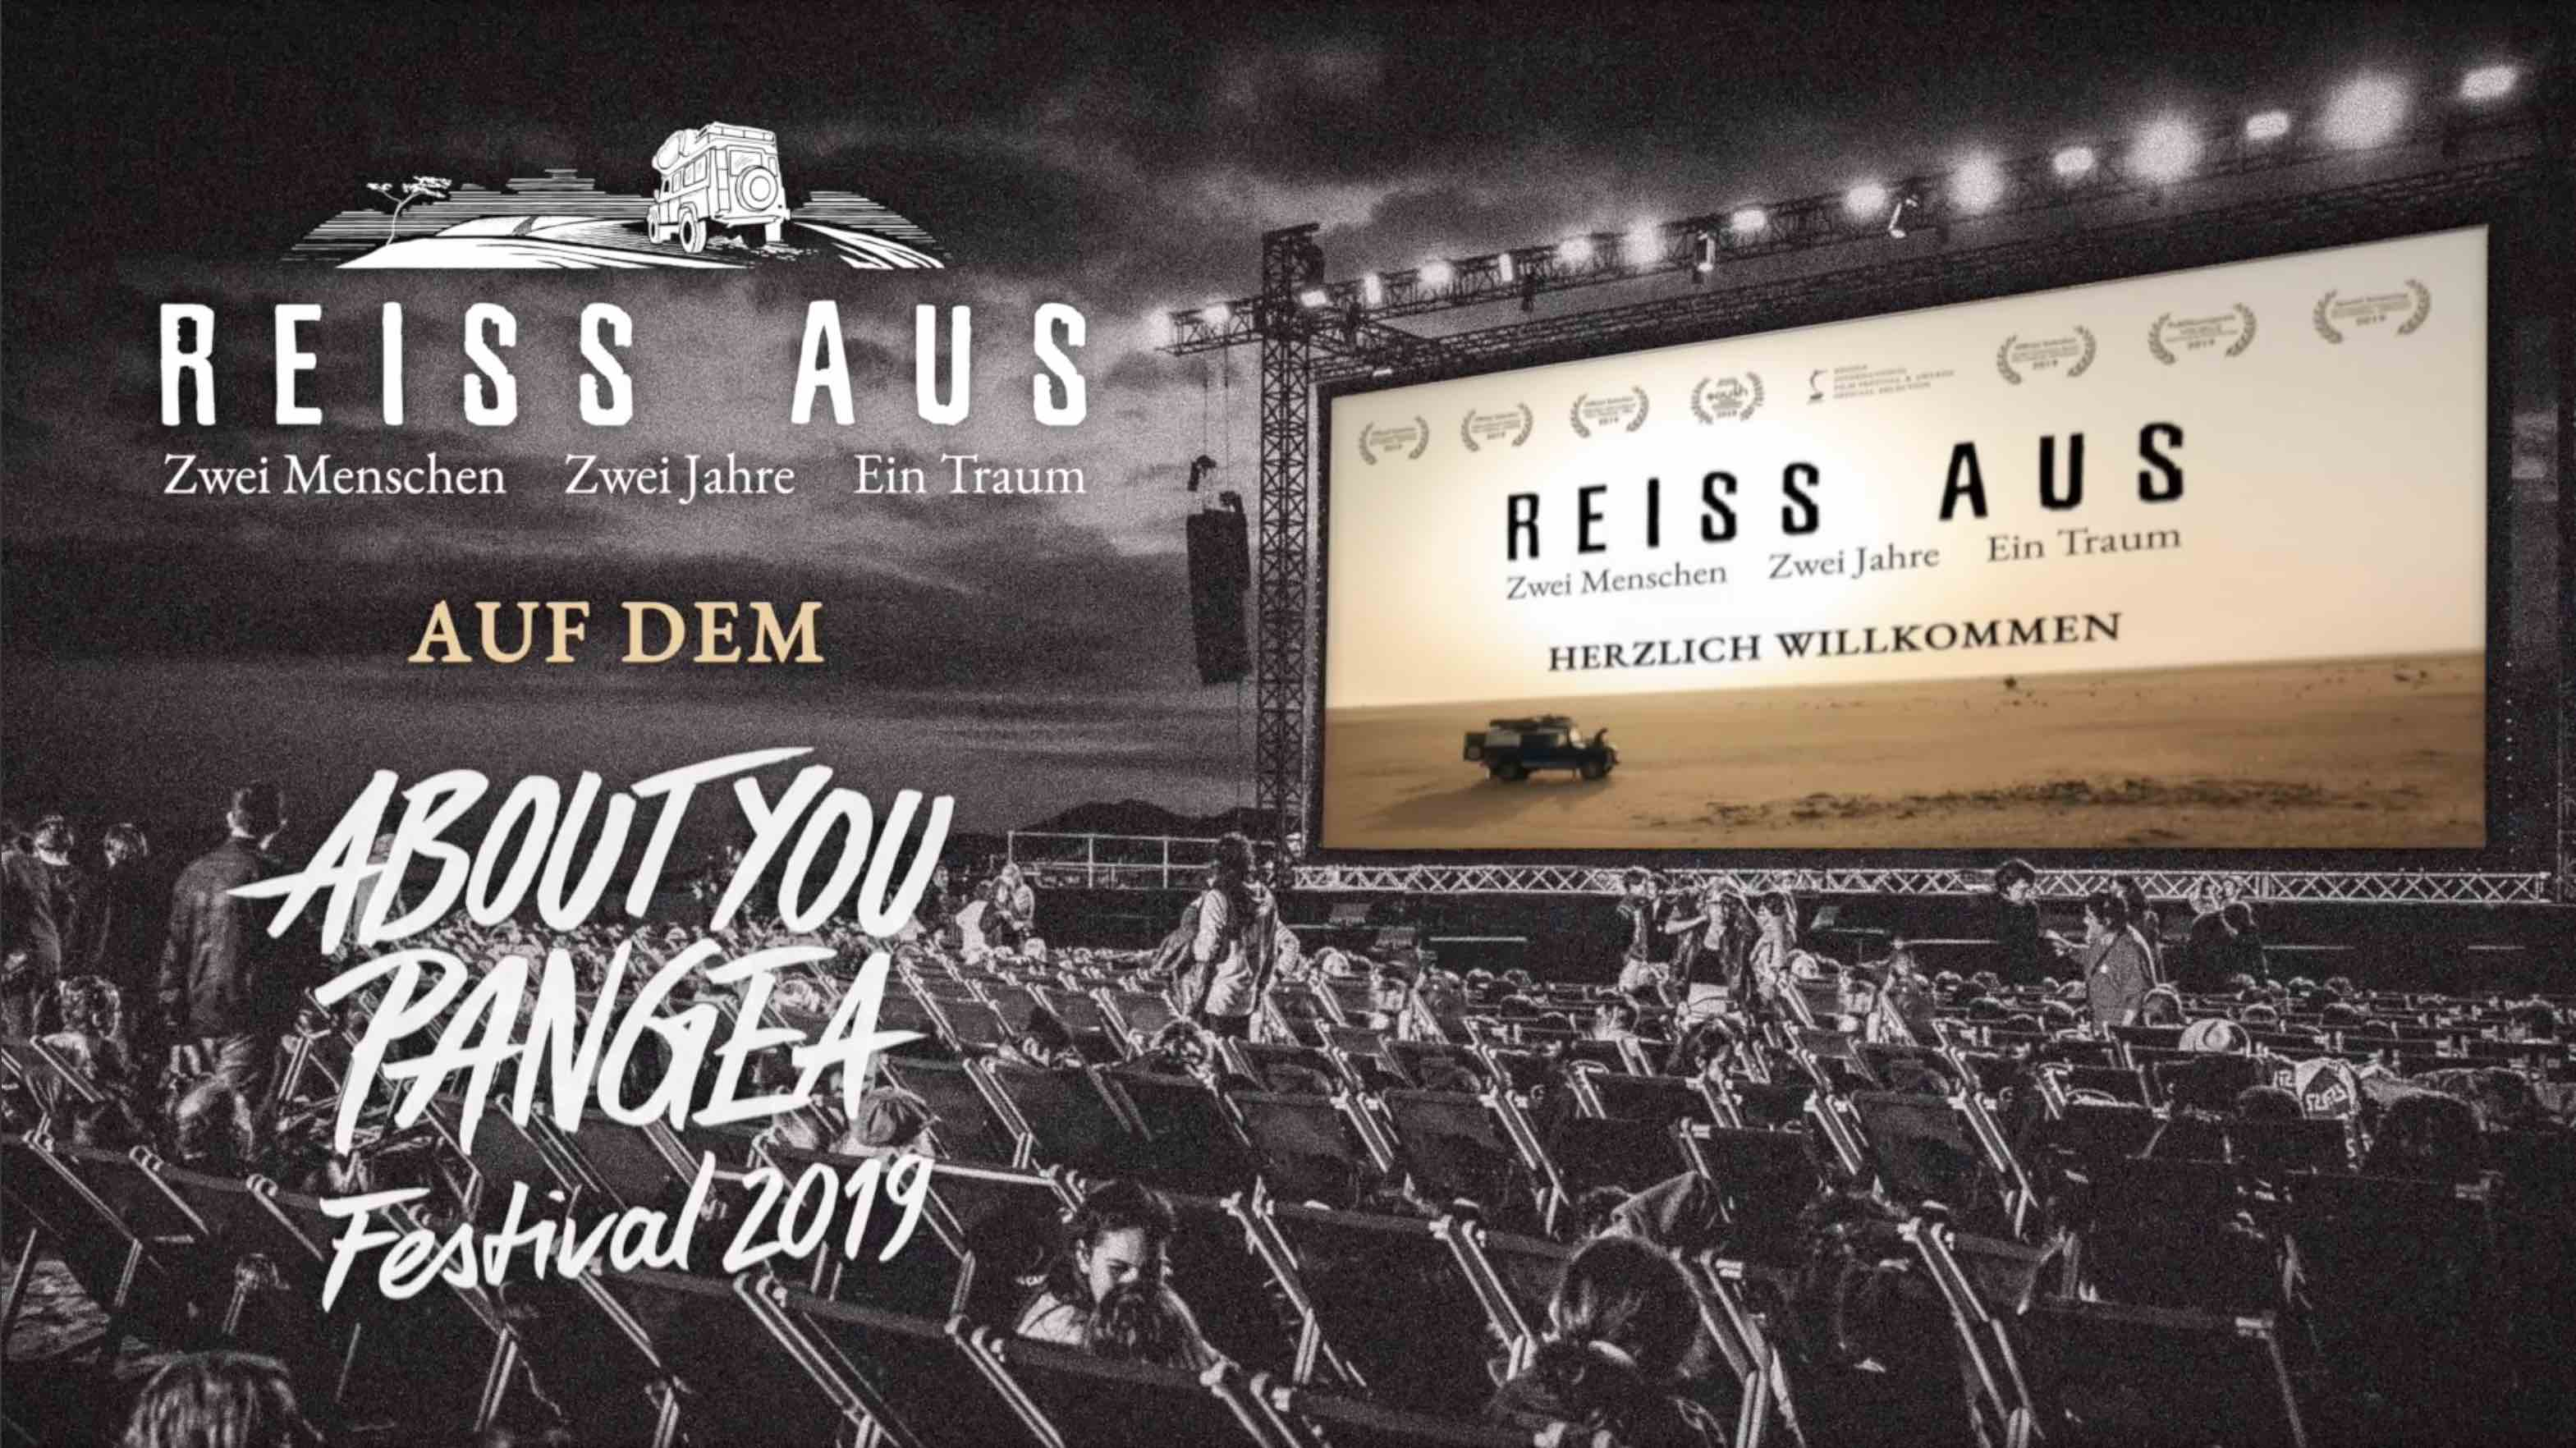 Special Screening: REISS AUS @About You Pangea Festival 2019